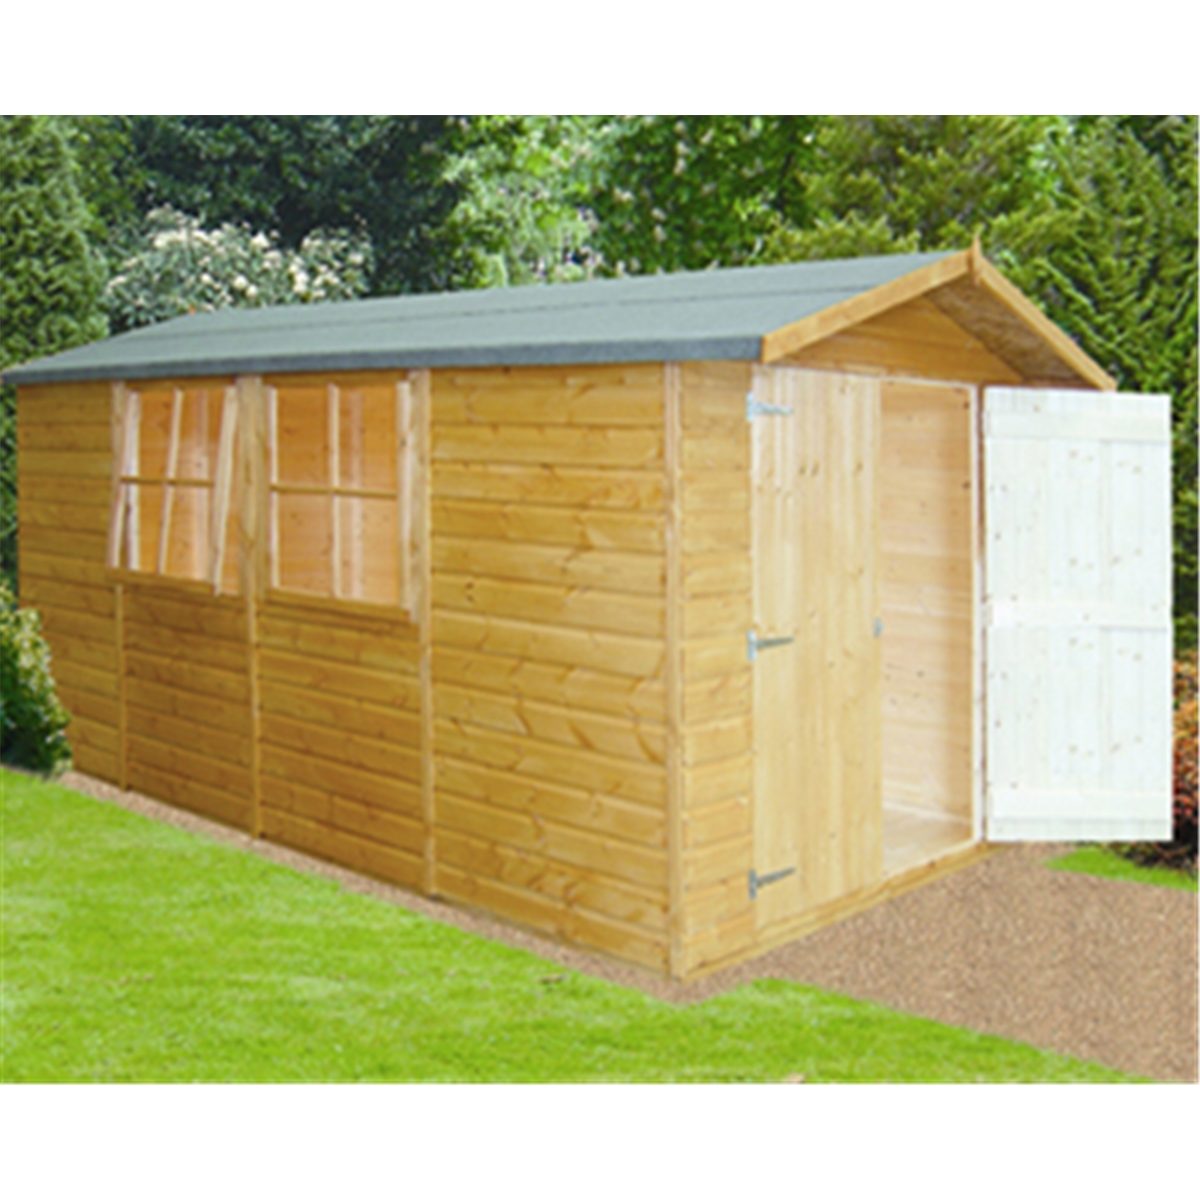 13 X 7 Tongue And Groove Corner Wooden Garden Shed Workshop 12mm Tongue And Groove Floor